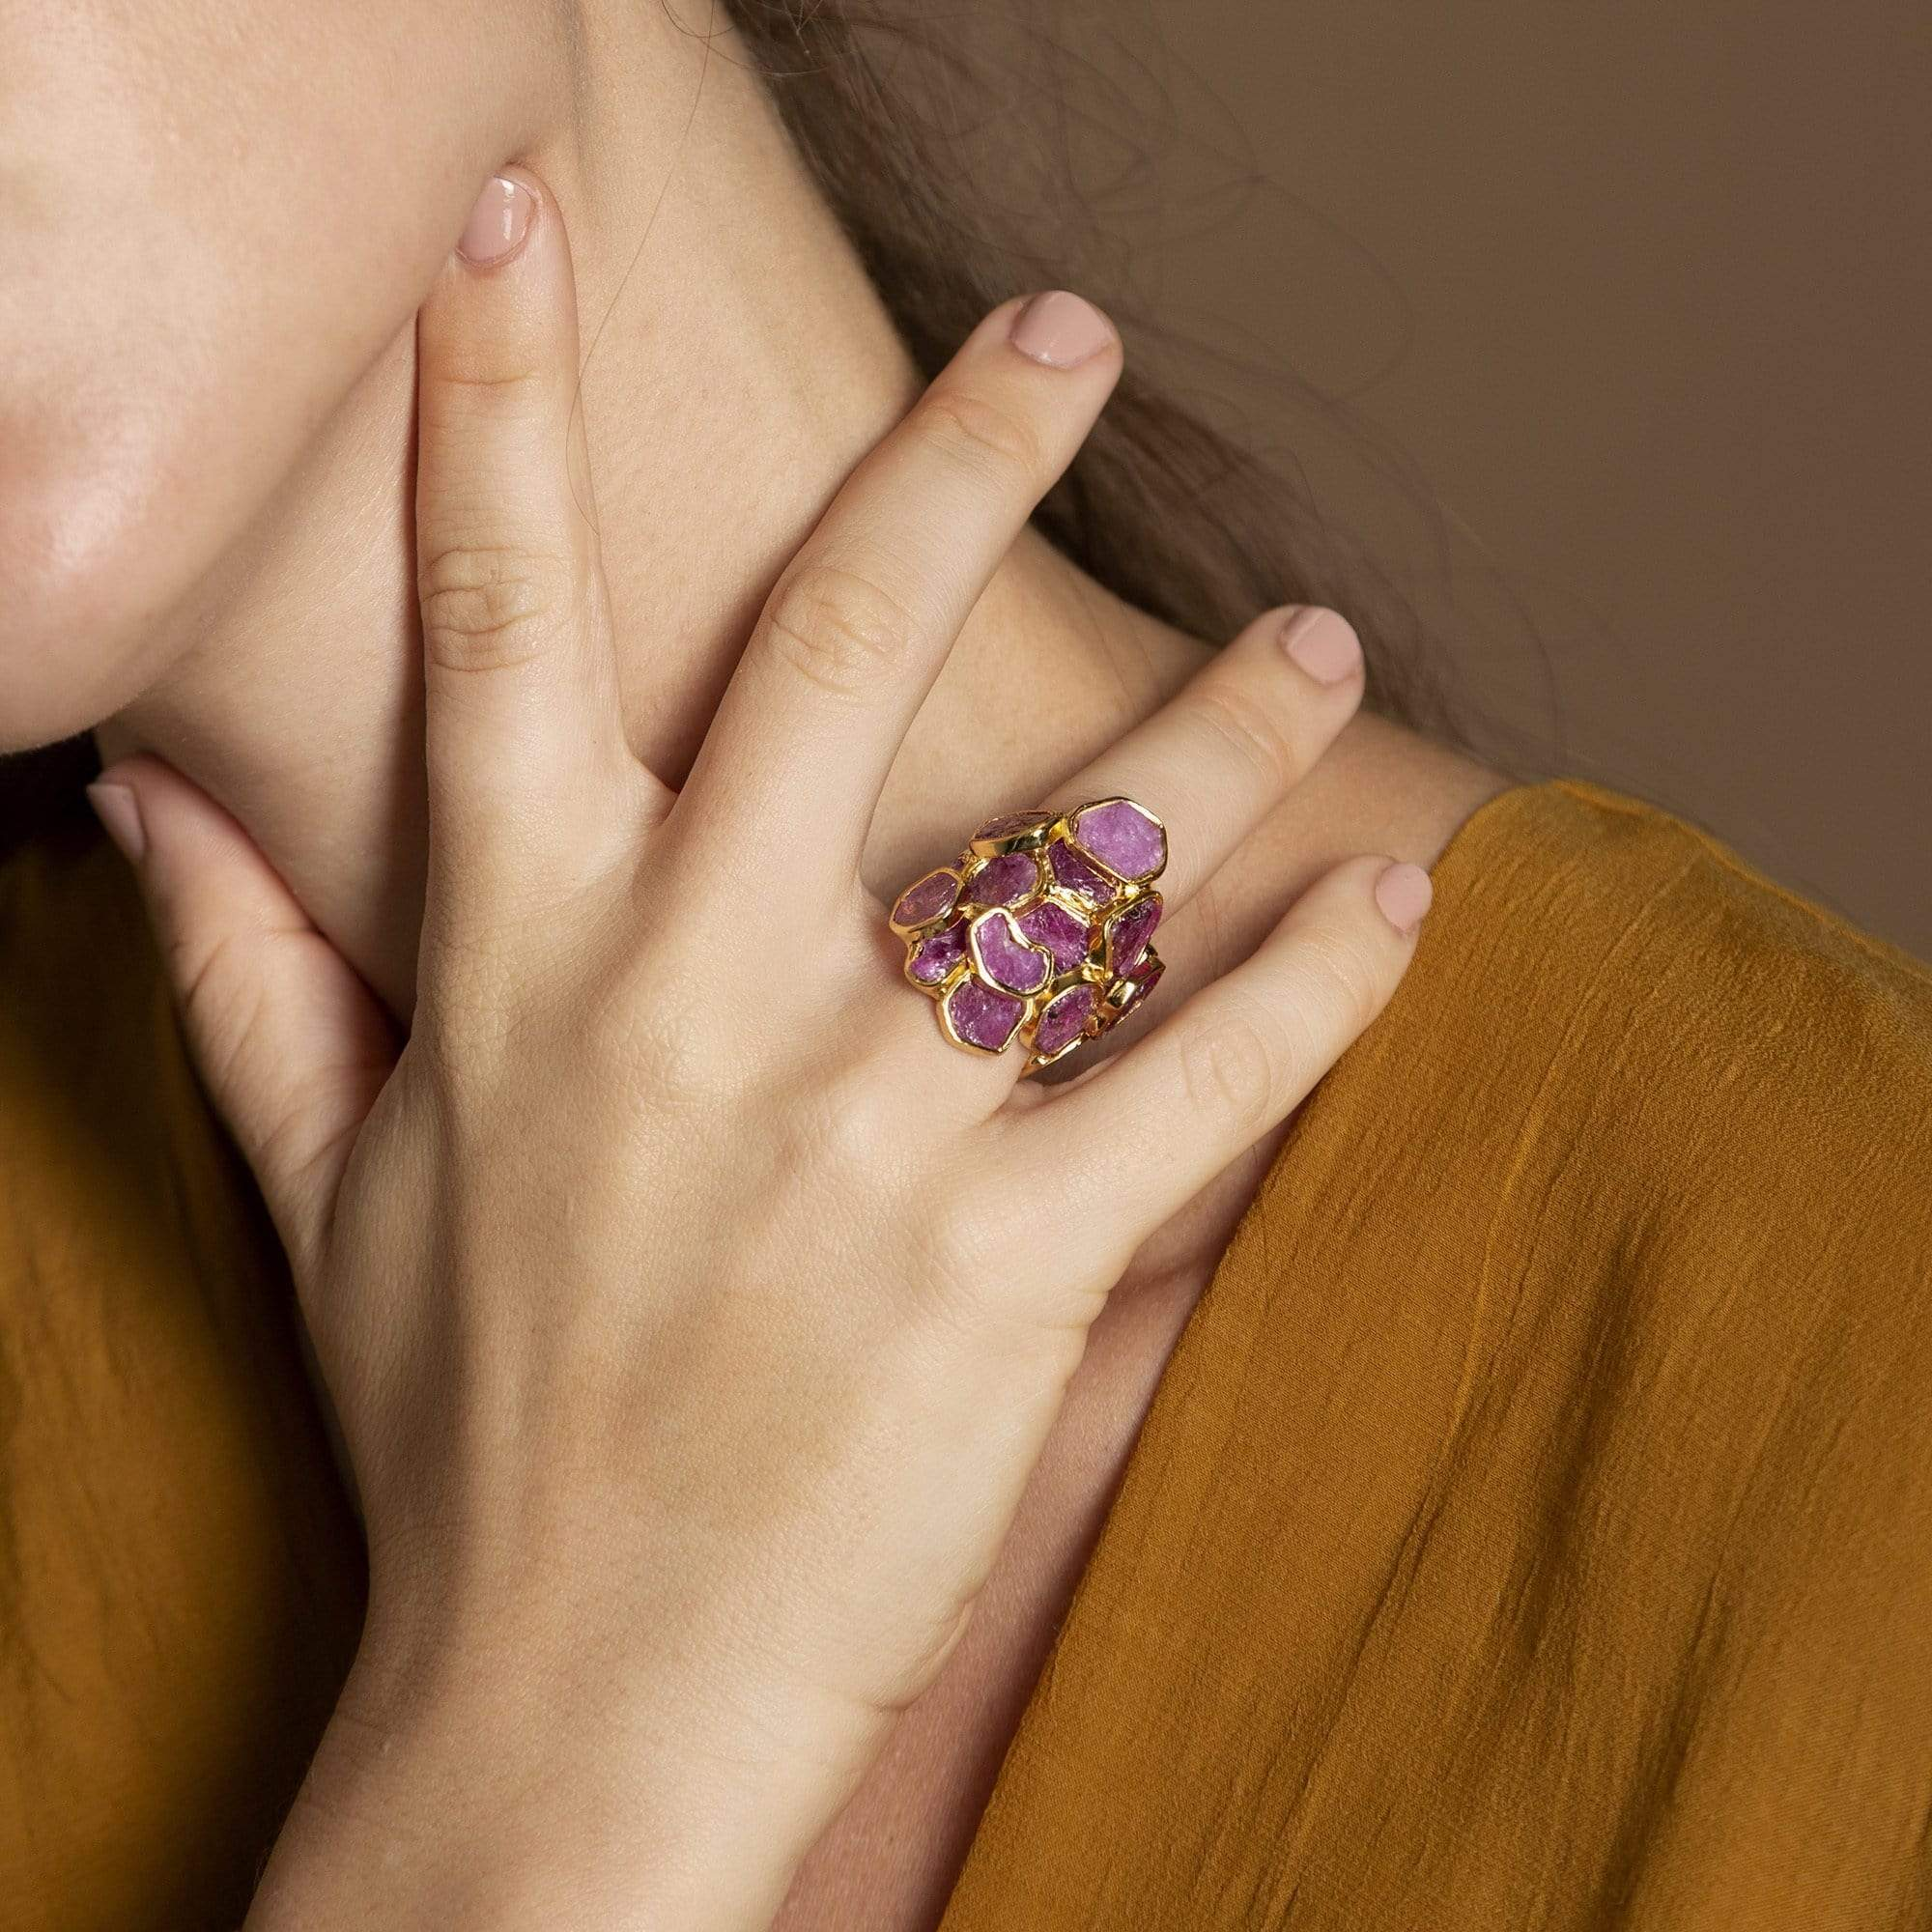 Mila Ring, Exclusive, Gold, Ruby, spo-disabled, StoneColor:PinkRuby, Style:Delicate, Type:StoneCandyDelicate Ring